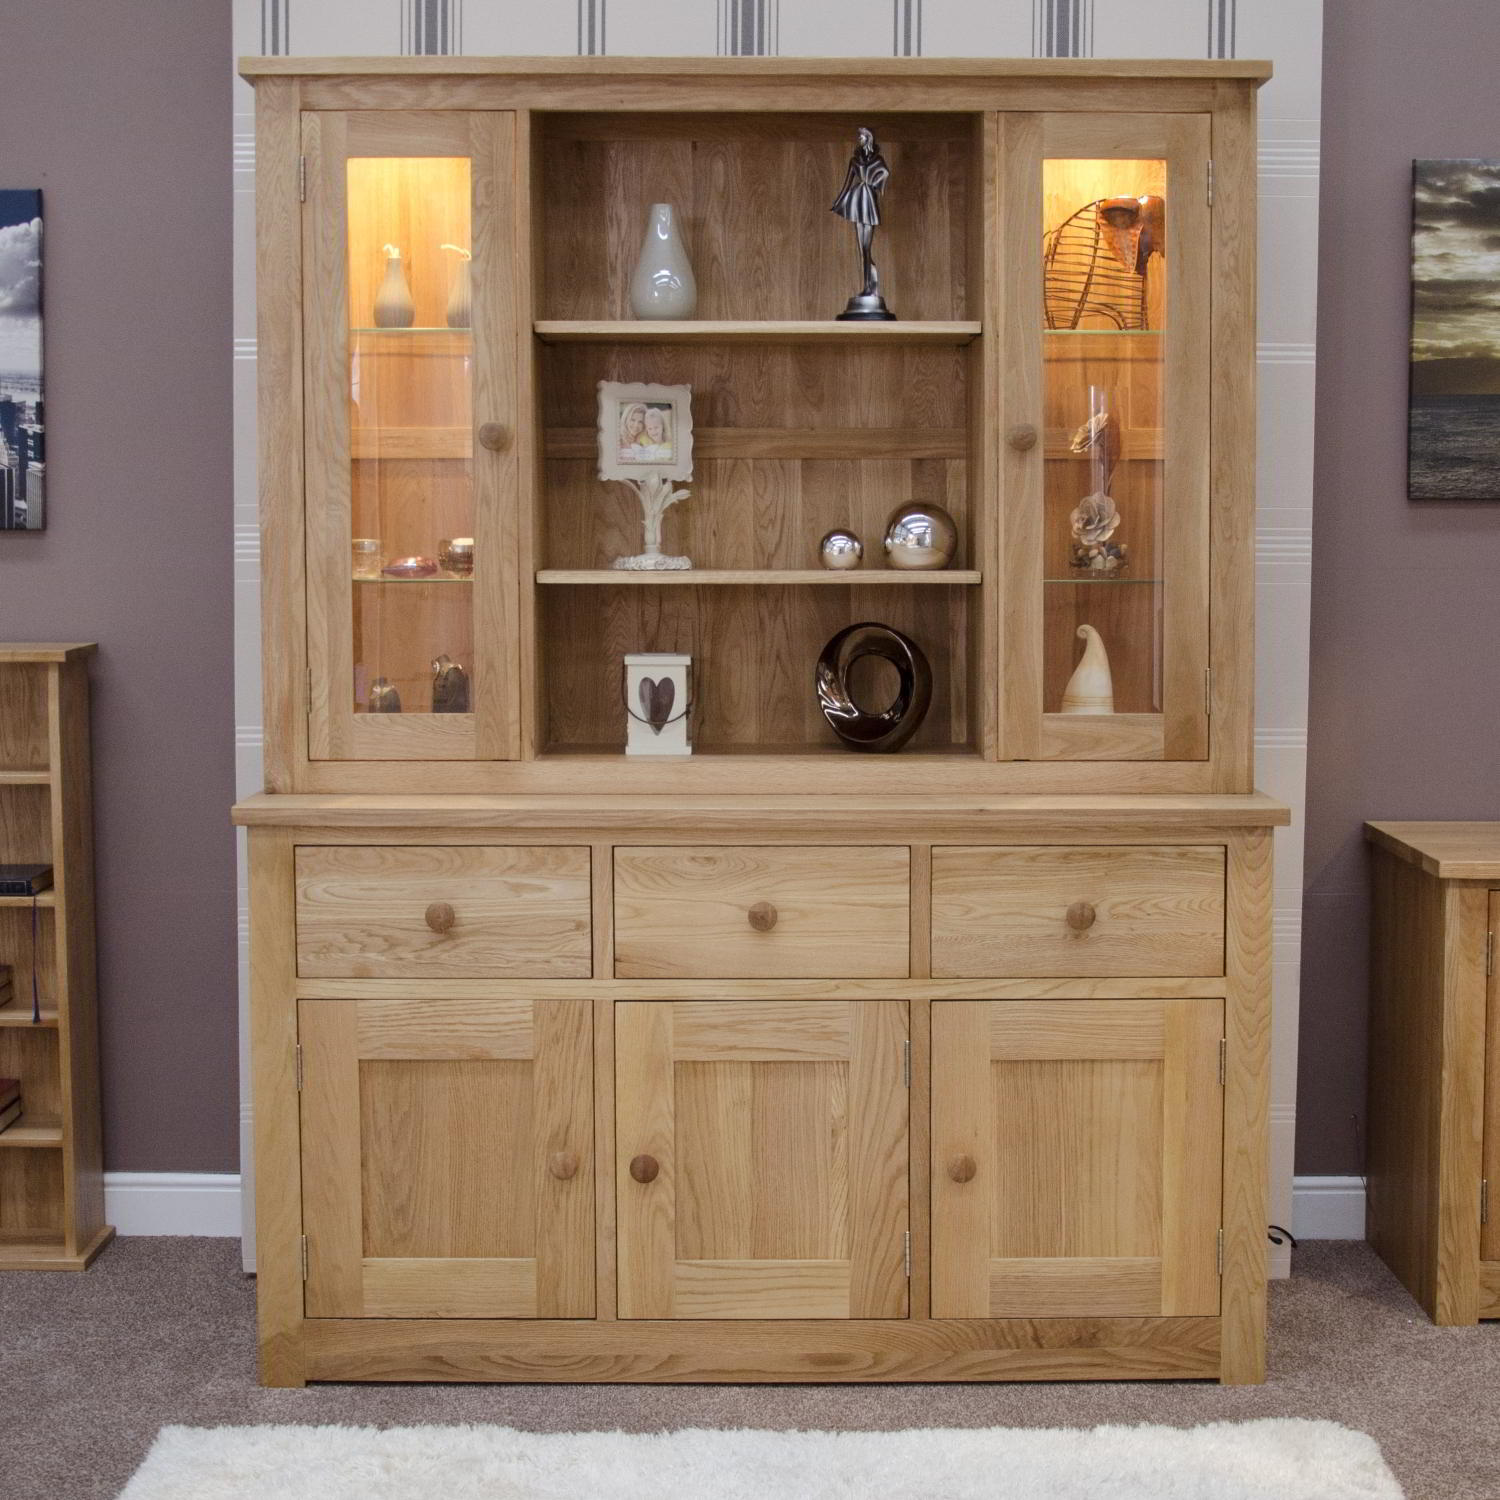 Kingston solid modern oak furniture large dresser display for Solid oak furniture